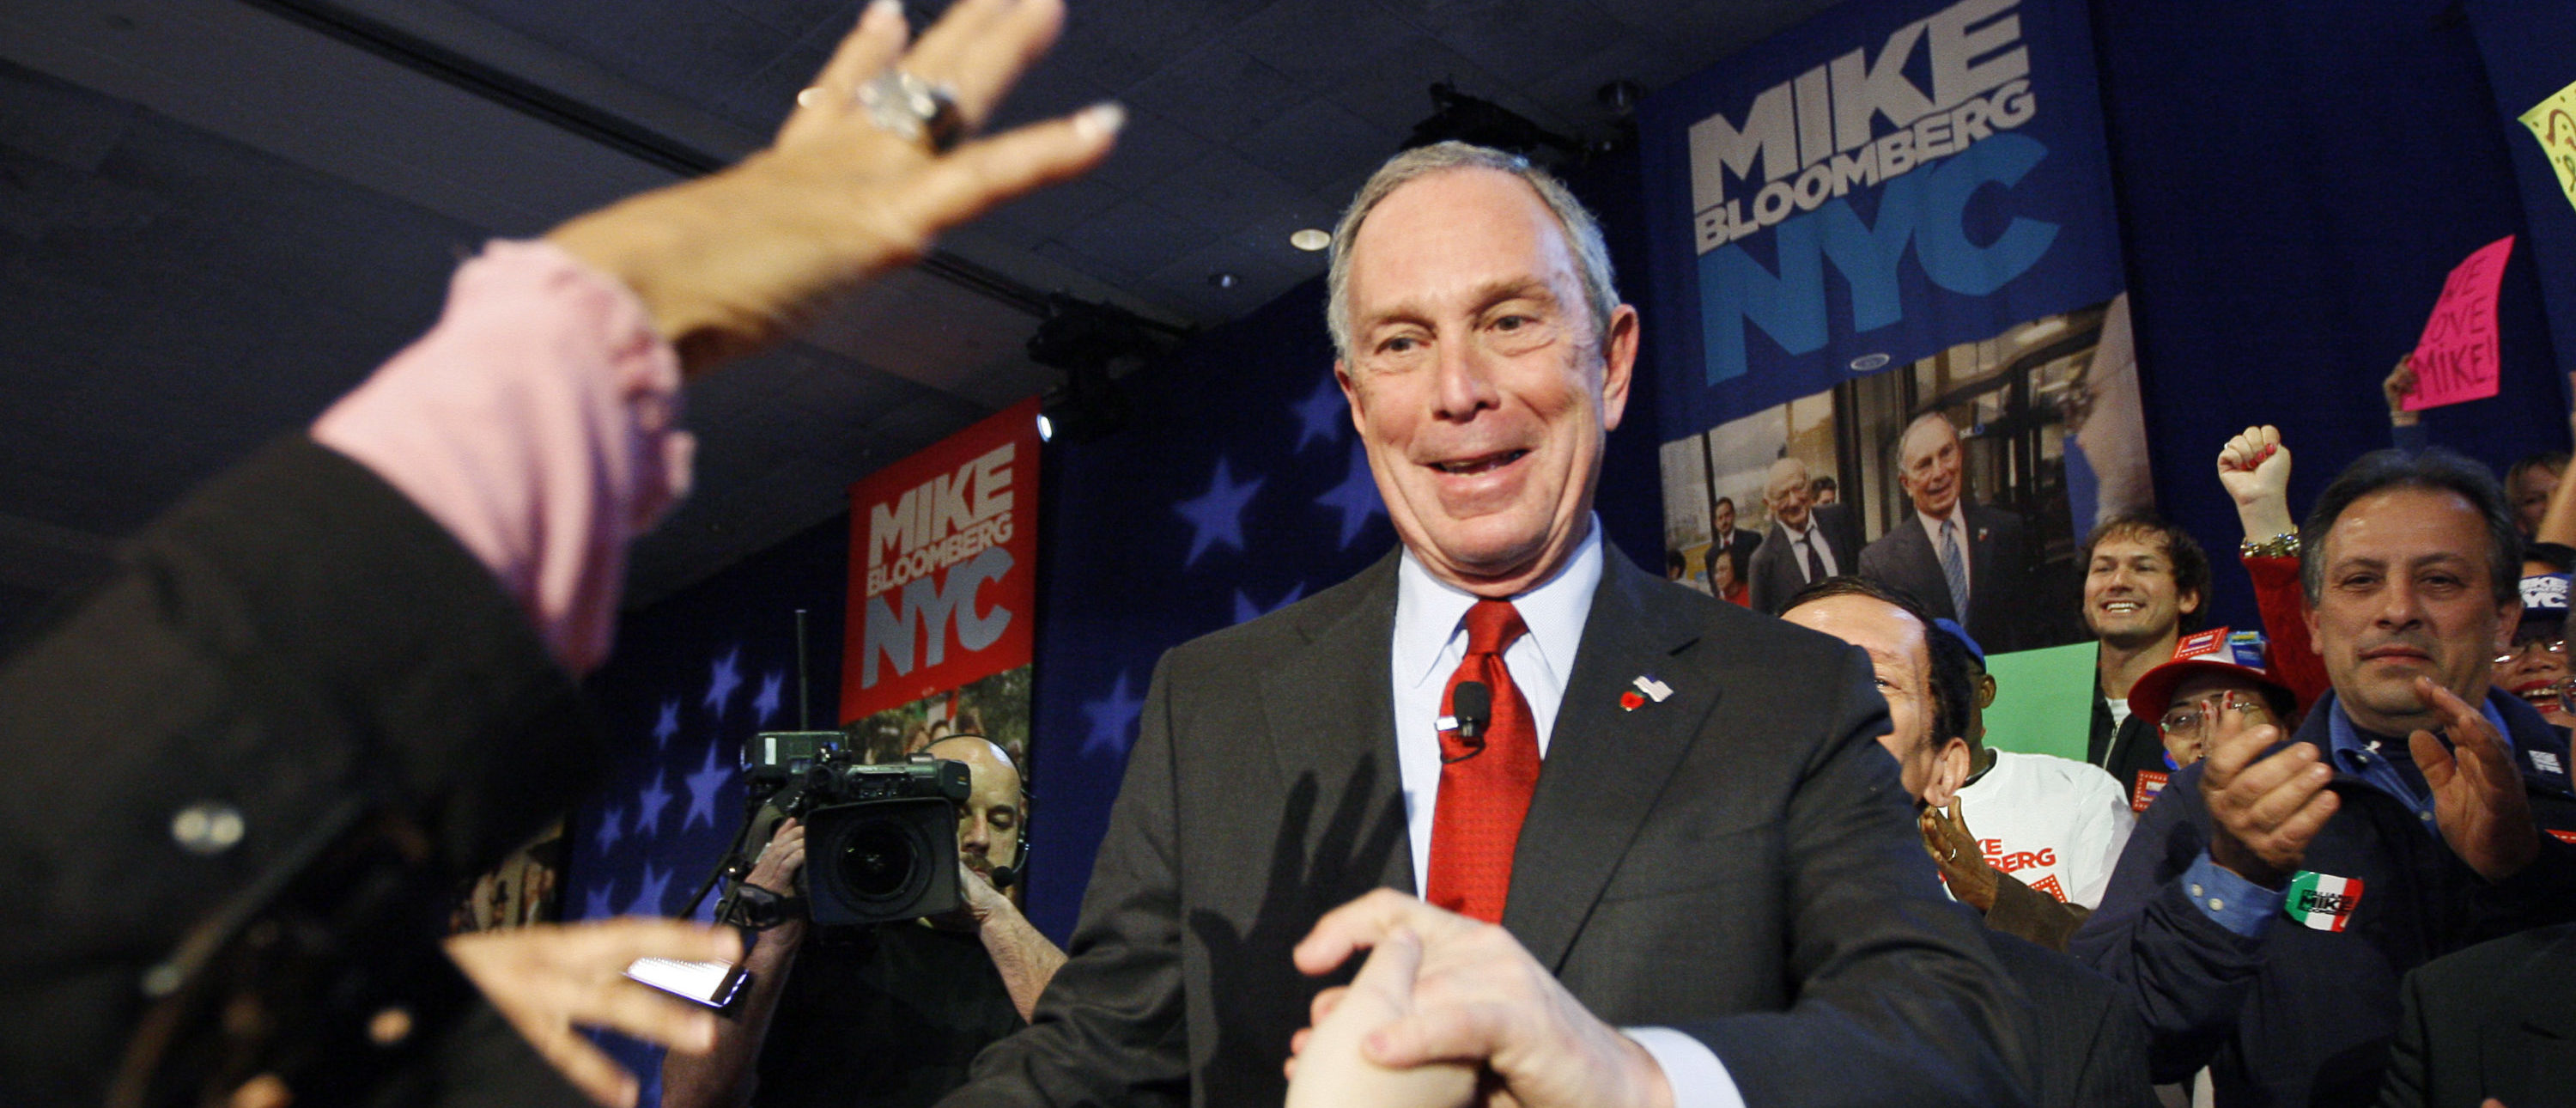 New York City Mayor Michael Bloomberg greets supporters after his election win in New York, November 3, 2009. REUTERS/Shaun Best